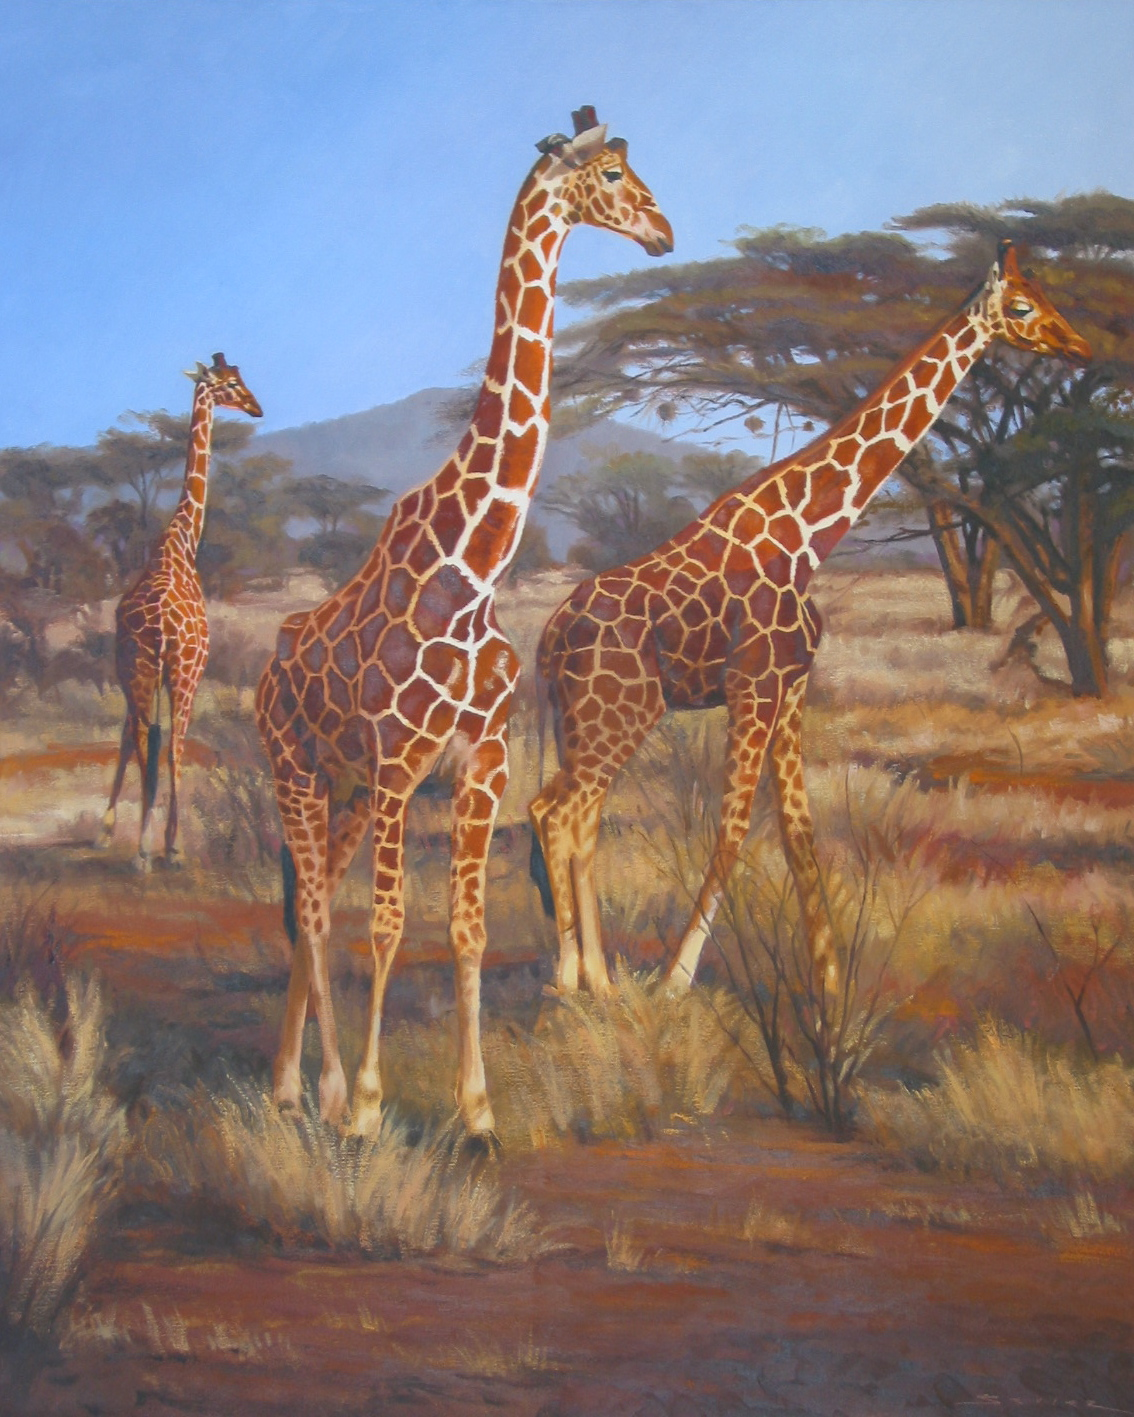 Reticulated Giraffes/Samburu Kenya, 30 x 24